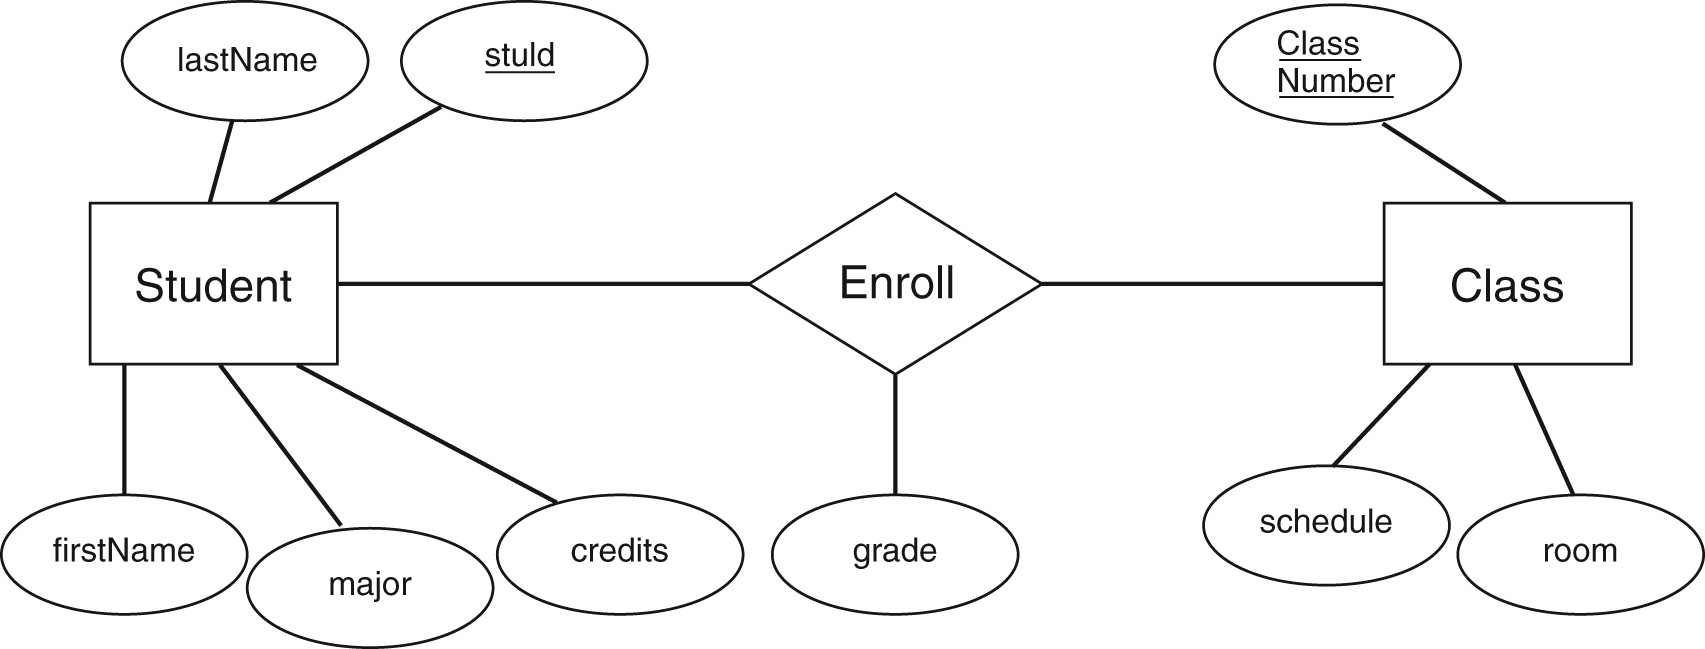 42 Friendly How To Draw Er Diagram In Dbms With Examples inside Simple Er Diagram